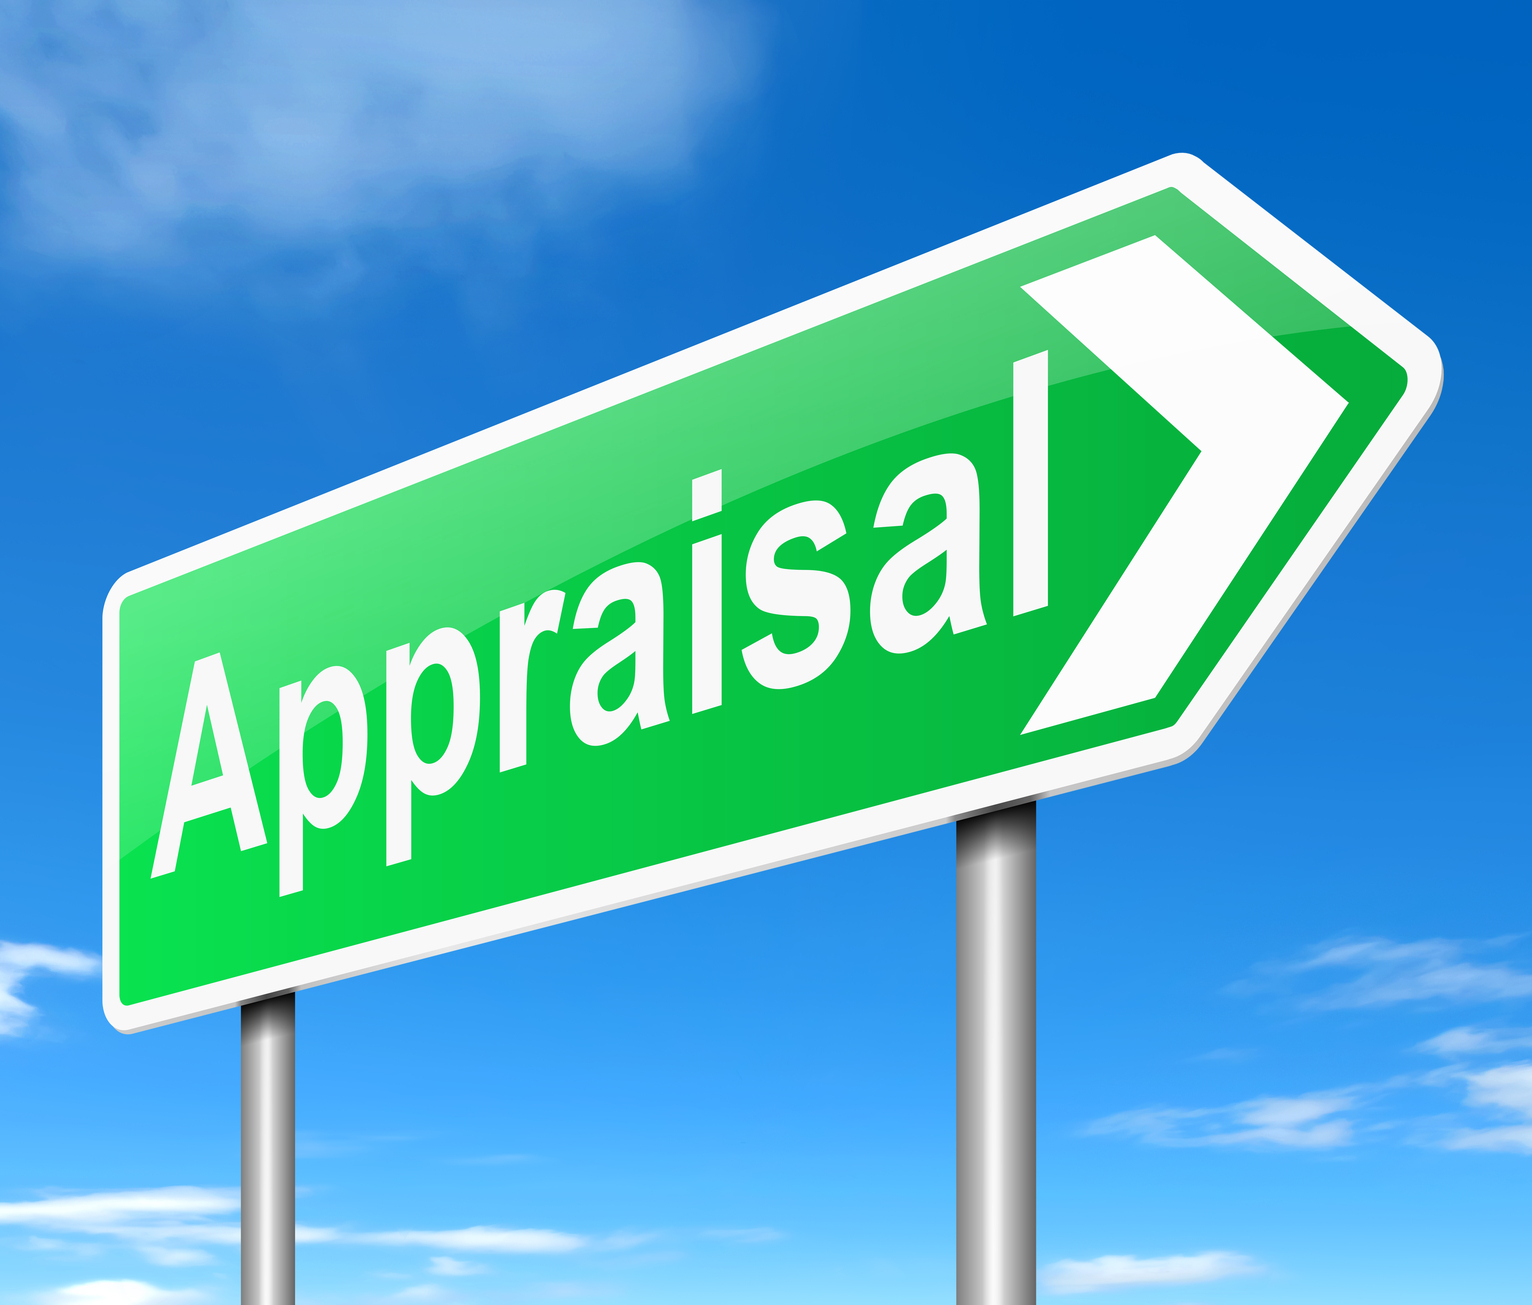 Appraisals and Home Inspections - What's the Difference?